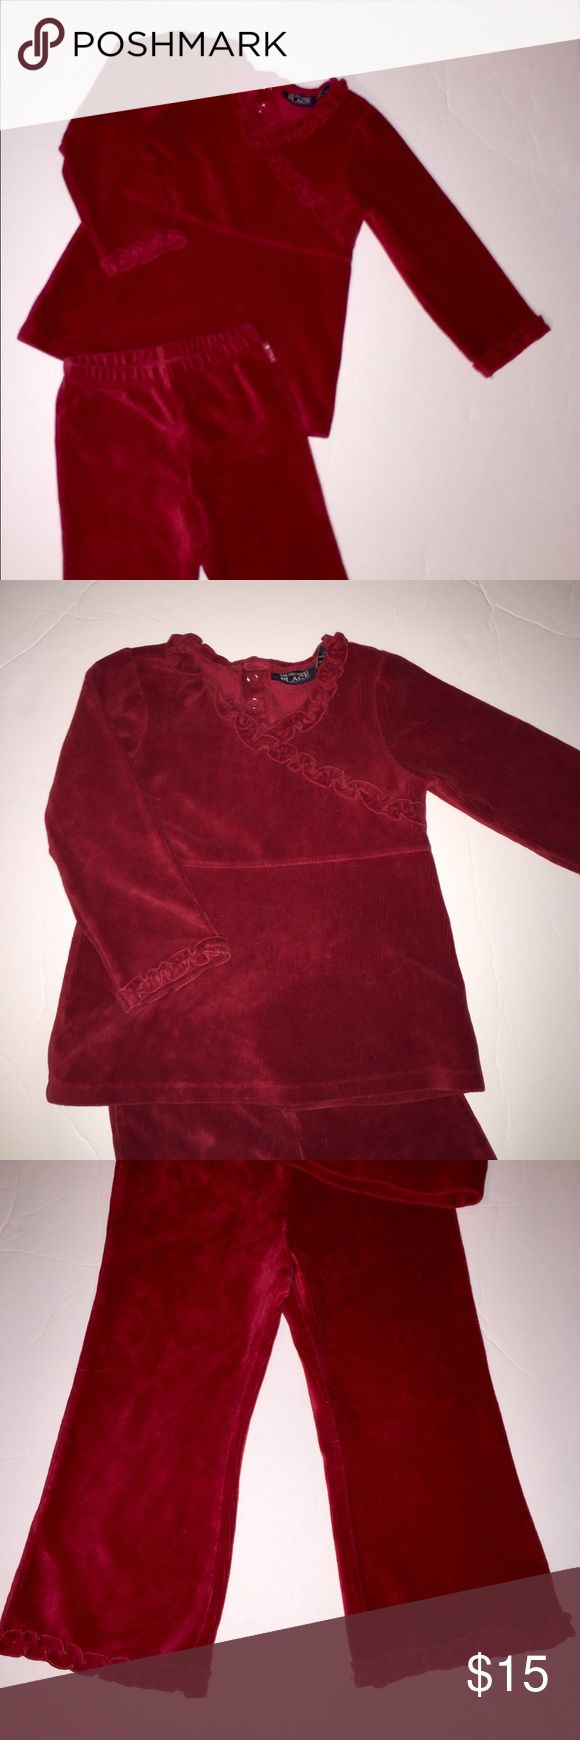 Children's Place Ruffle Red Velour Outfit size 3T Adorable Holiday Outfit size 3T by Children's Place. Velour Outfit with ruffles on sleeve ends and around V-Neck. 2 Snap Closure at top of Back for easy on and easy off. Pull-on Pants with Ruffle bottoms of pants. Super cute and hard to tell w/photographs. Children's Place Matching Sets